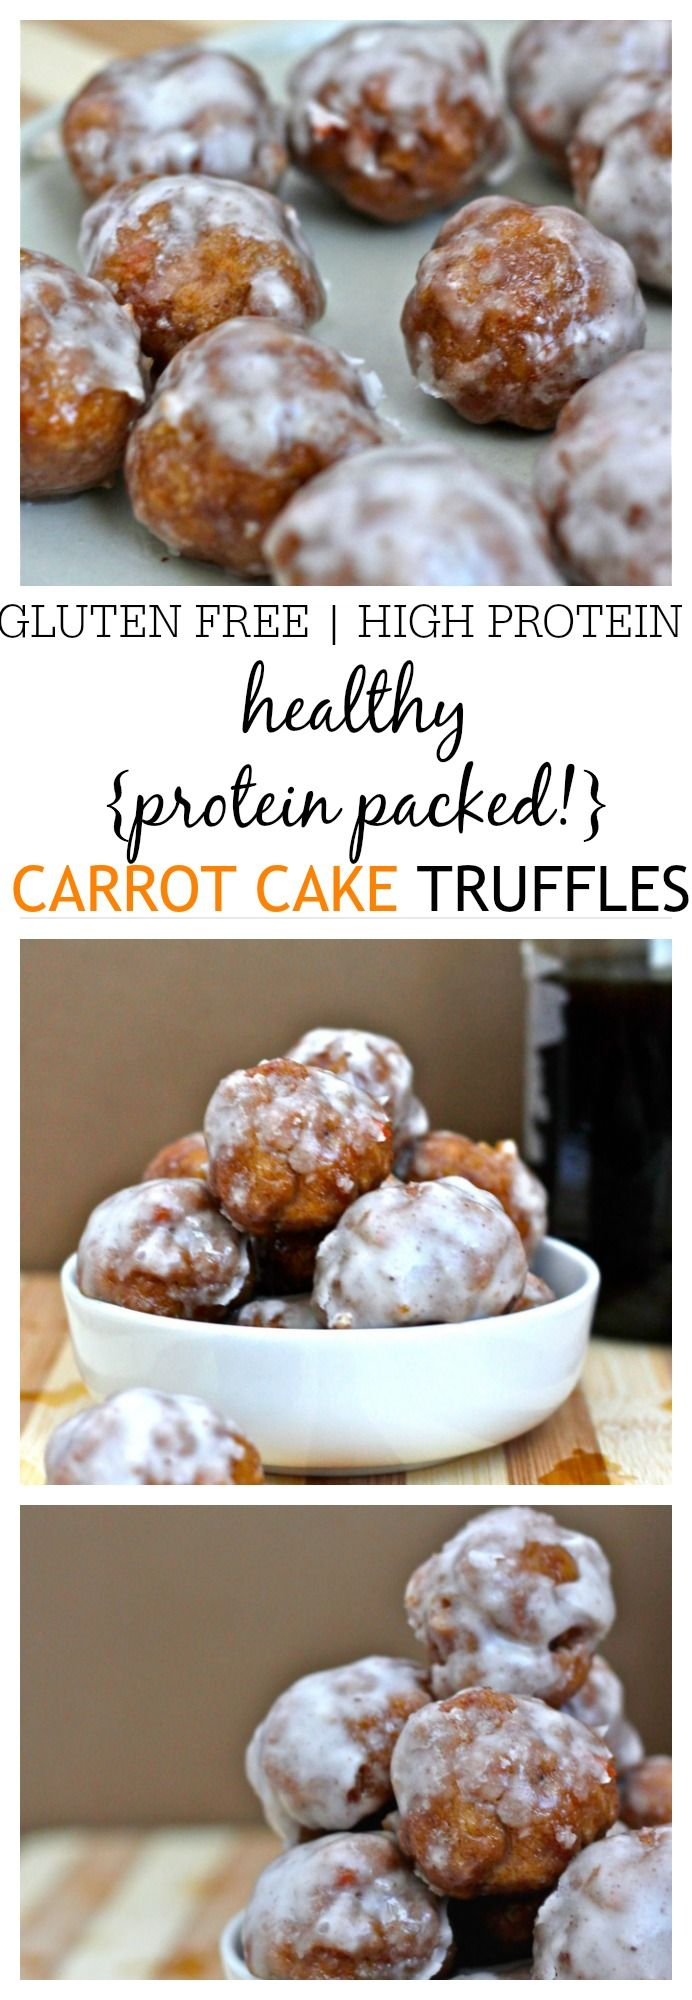 These healthy Carrot Cake Truffles are SO simple to whip up and you'd never tell they were nutritious!